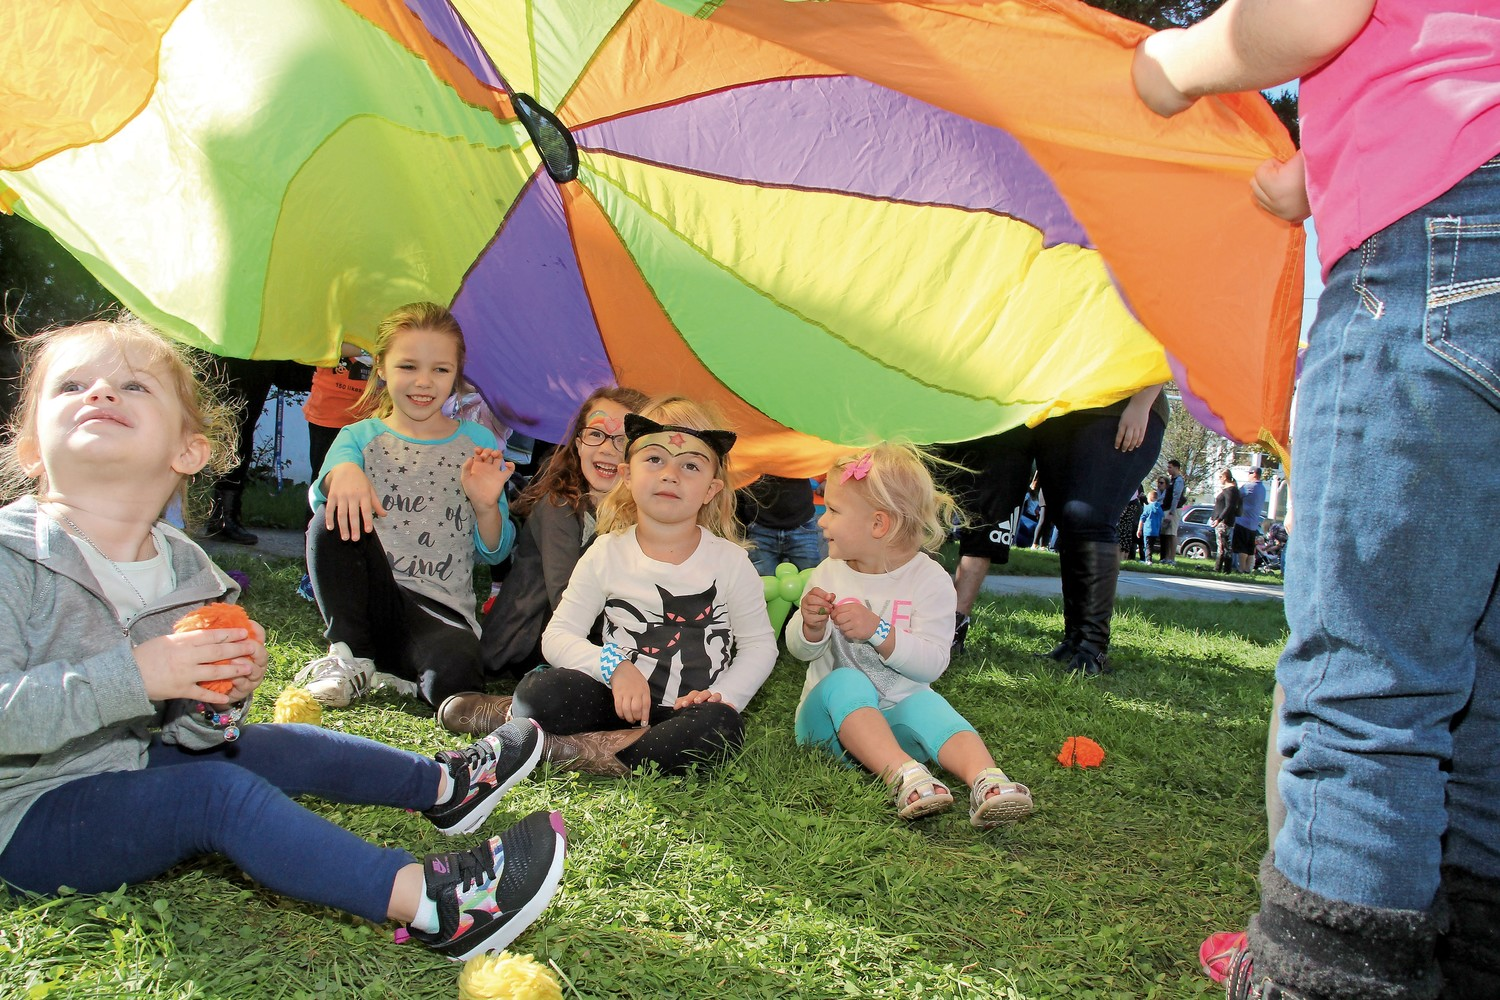 Children In The Pixie Nursery School Program Had Some Fun Under A Parachute On Front